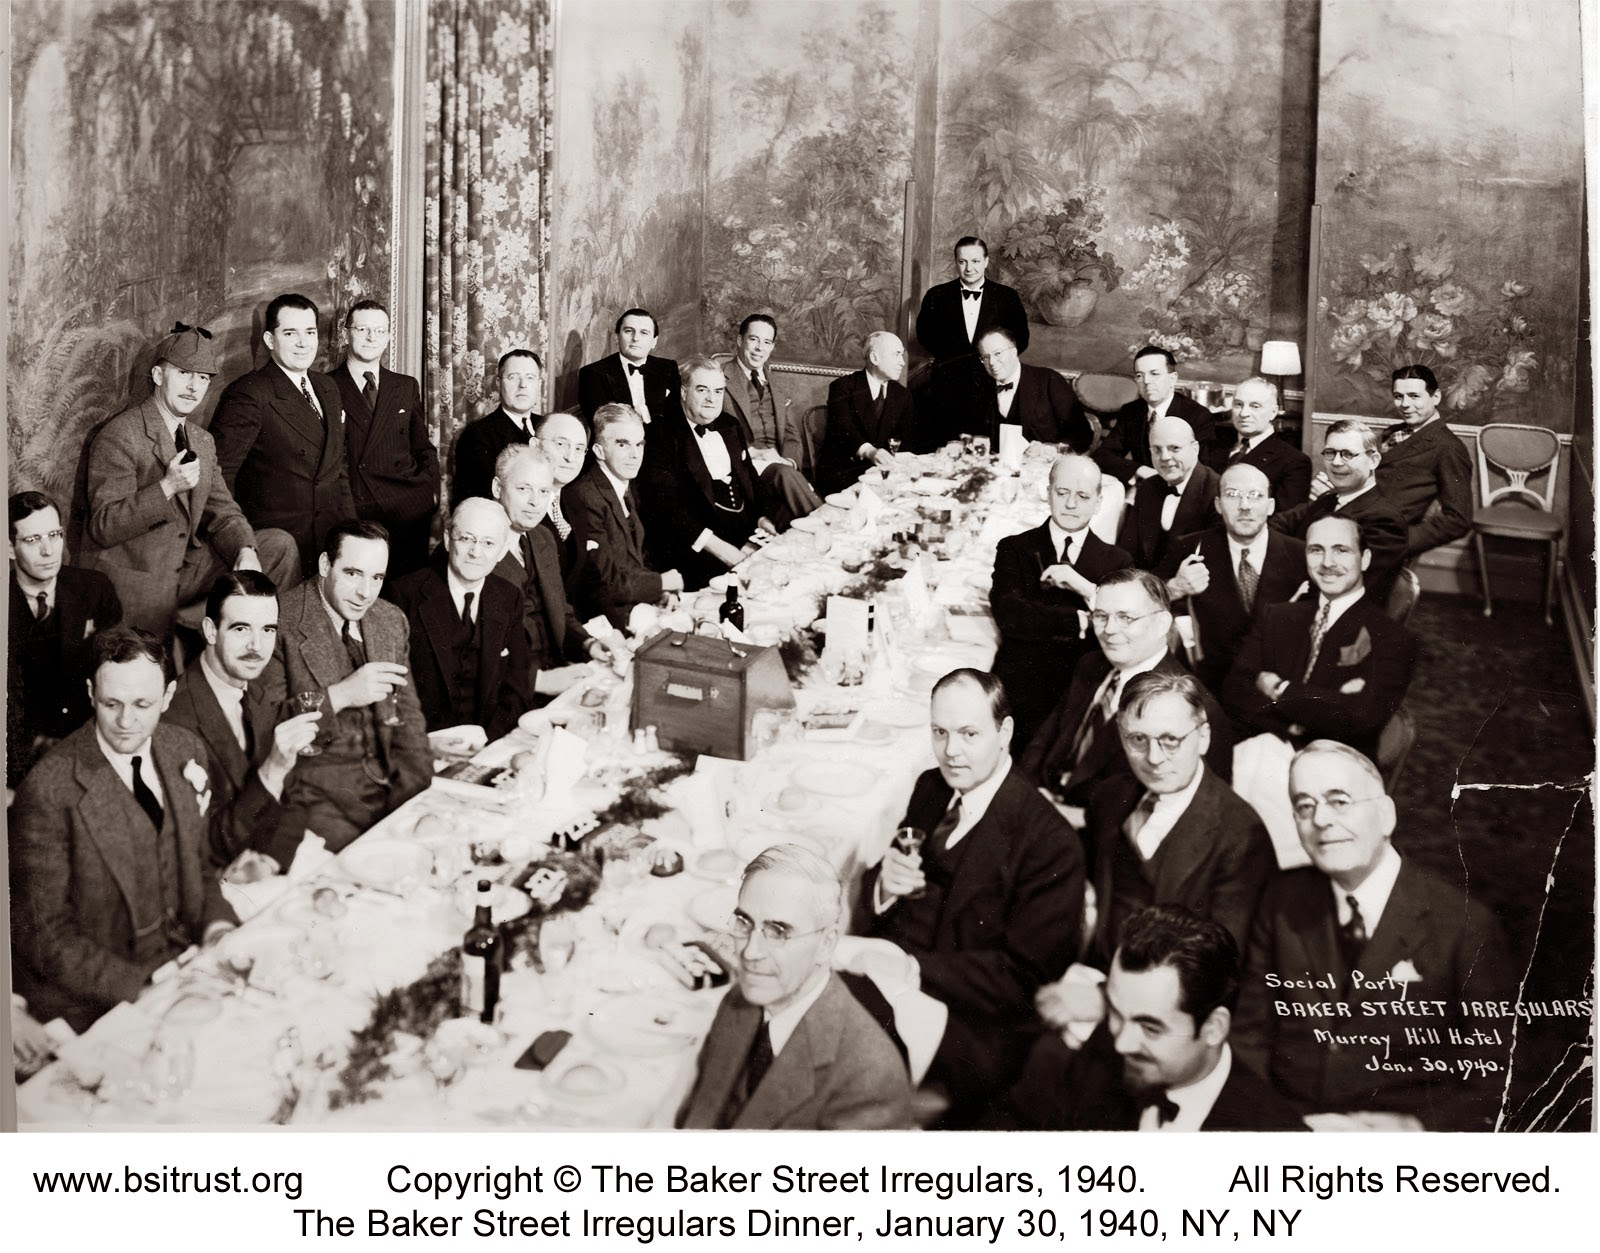 The 1940 BSI Dinner group photo